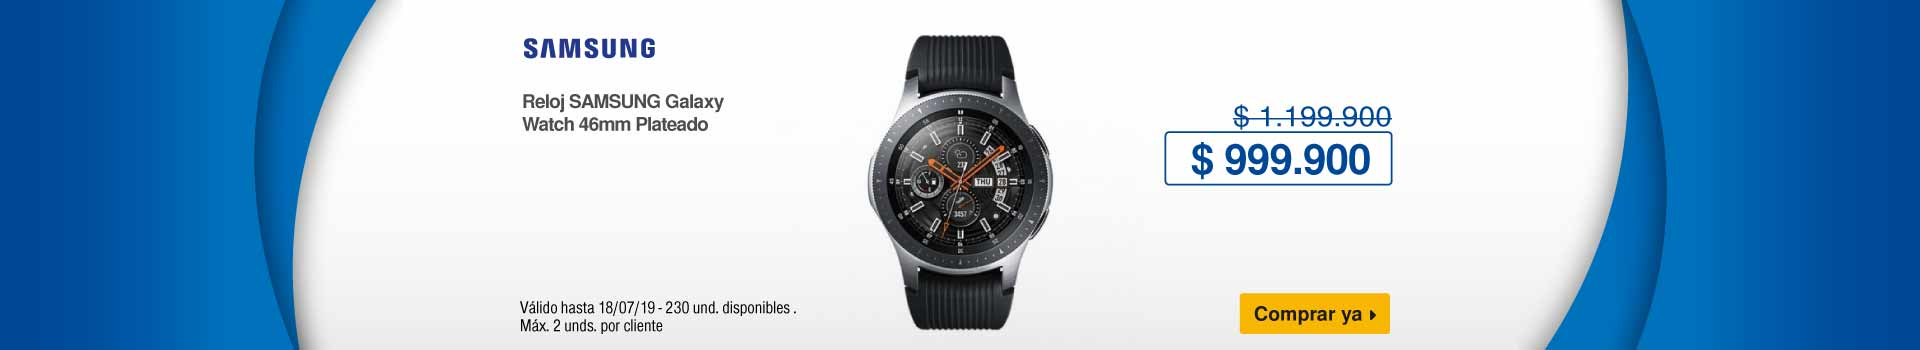 AK-KT-BCAT-6-SMARTWATCH-SAMSUNG-GALAXY_46MM-JULIO 13